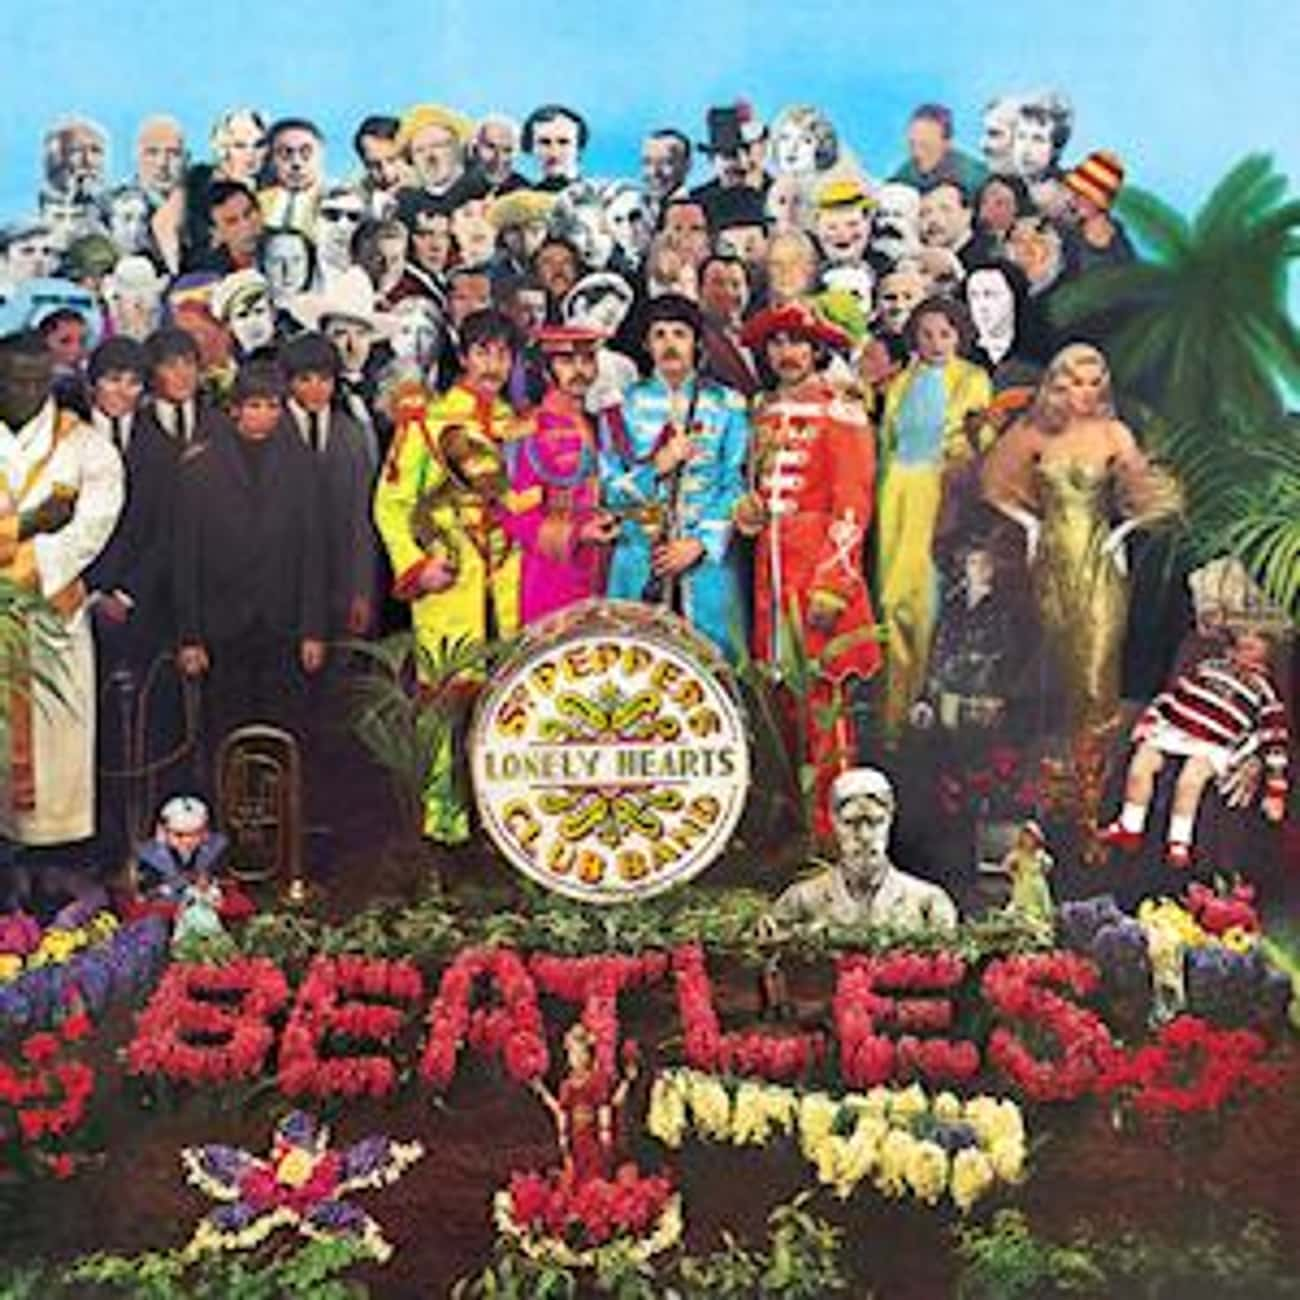 Sgt. Pepper's Lonely Hearts Cl is listed (or ranked) 3 on the list The Greatest Album Covers of All Time